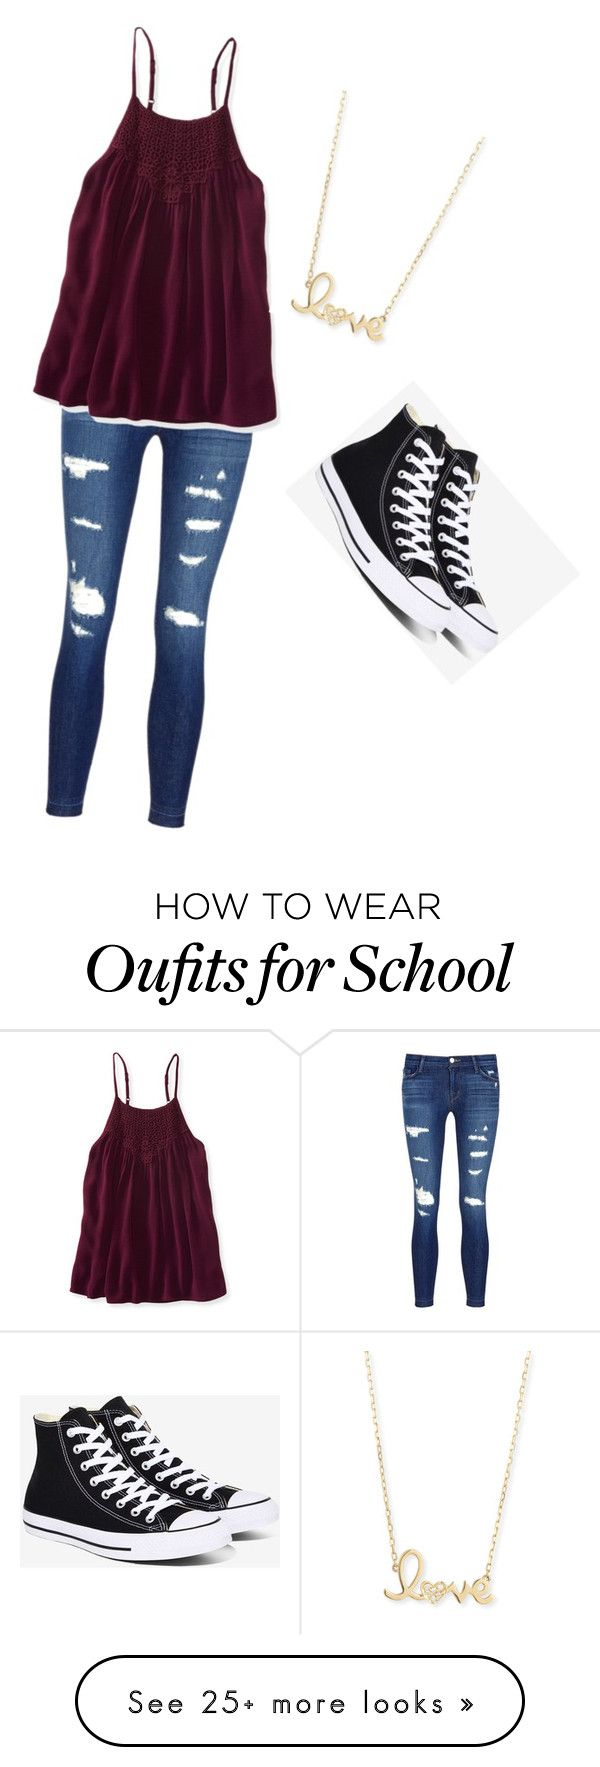 Teen apparel and shoe sites